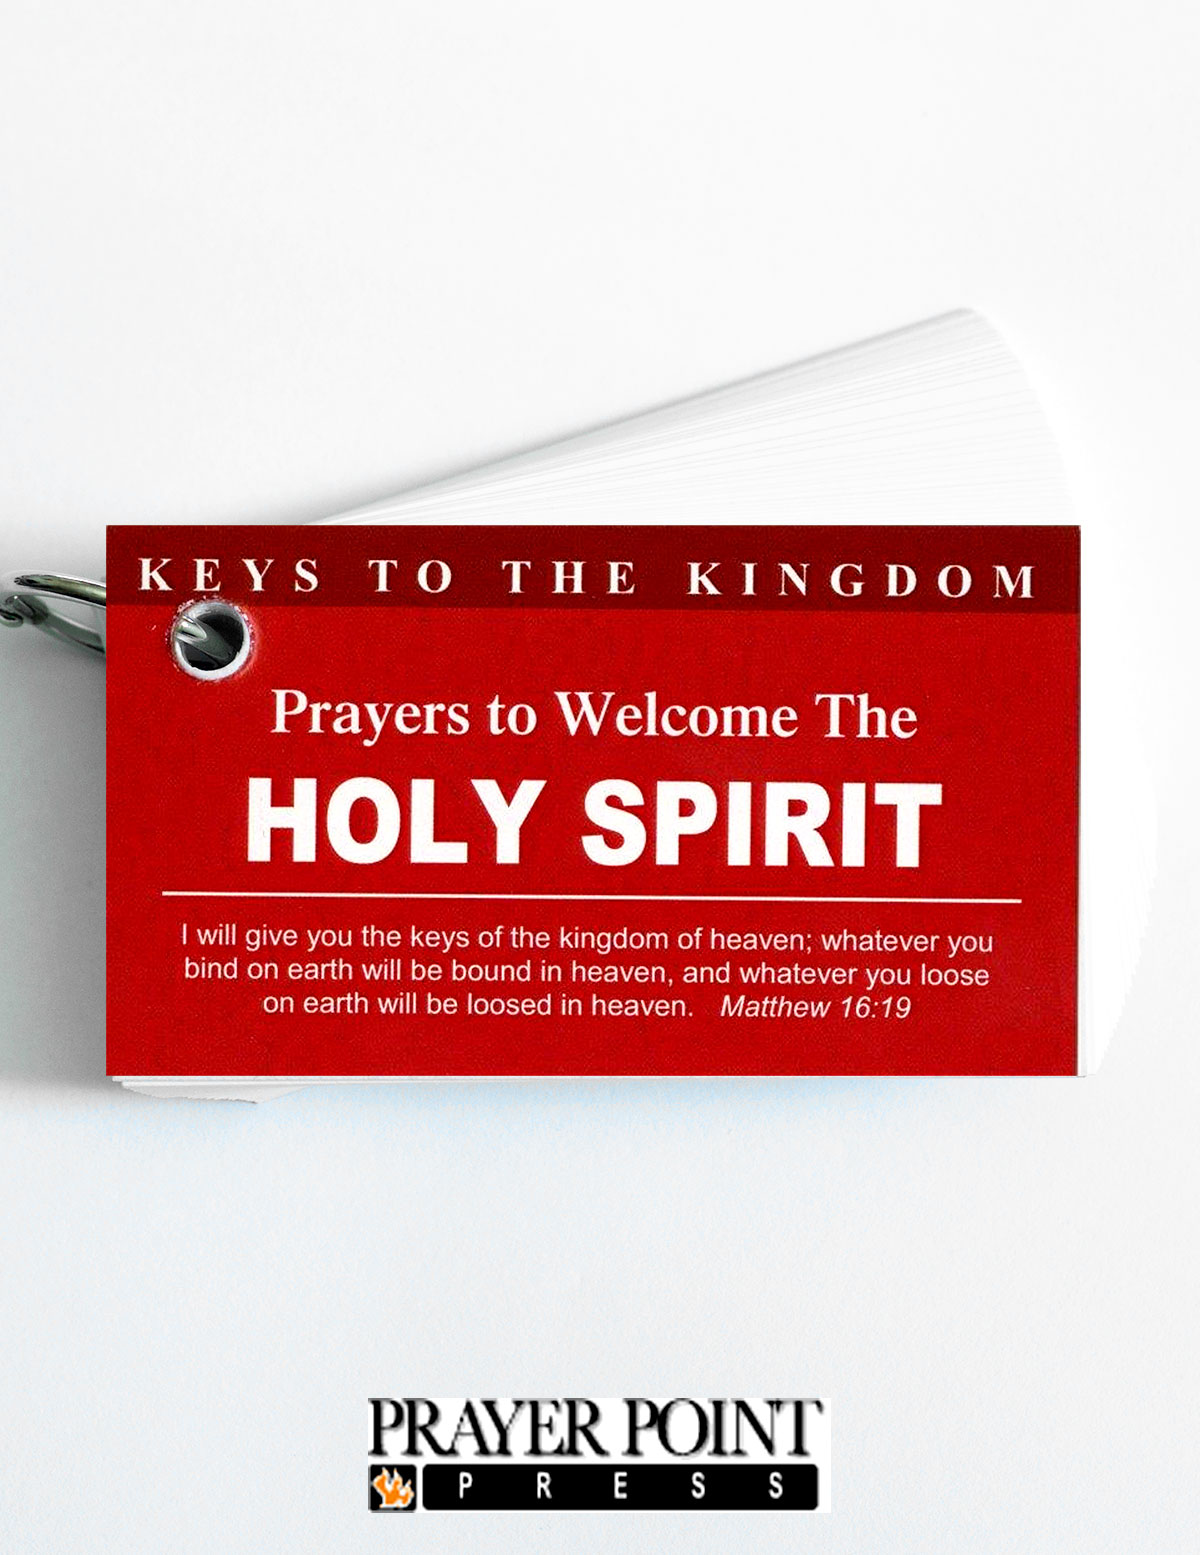 Keys To The Kingdom: Prayers to Seek The Holy Spirit